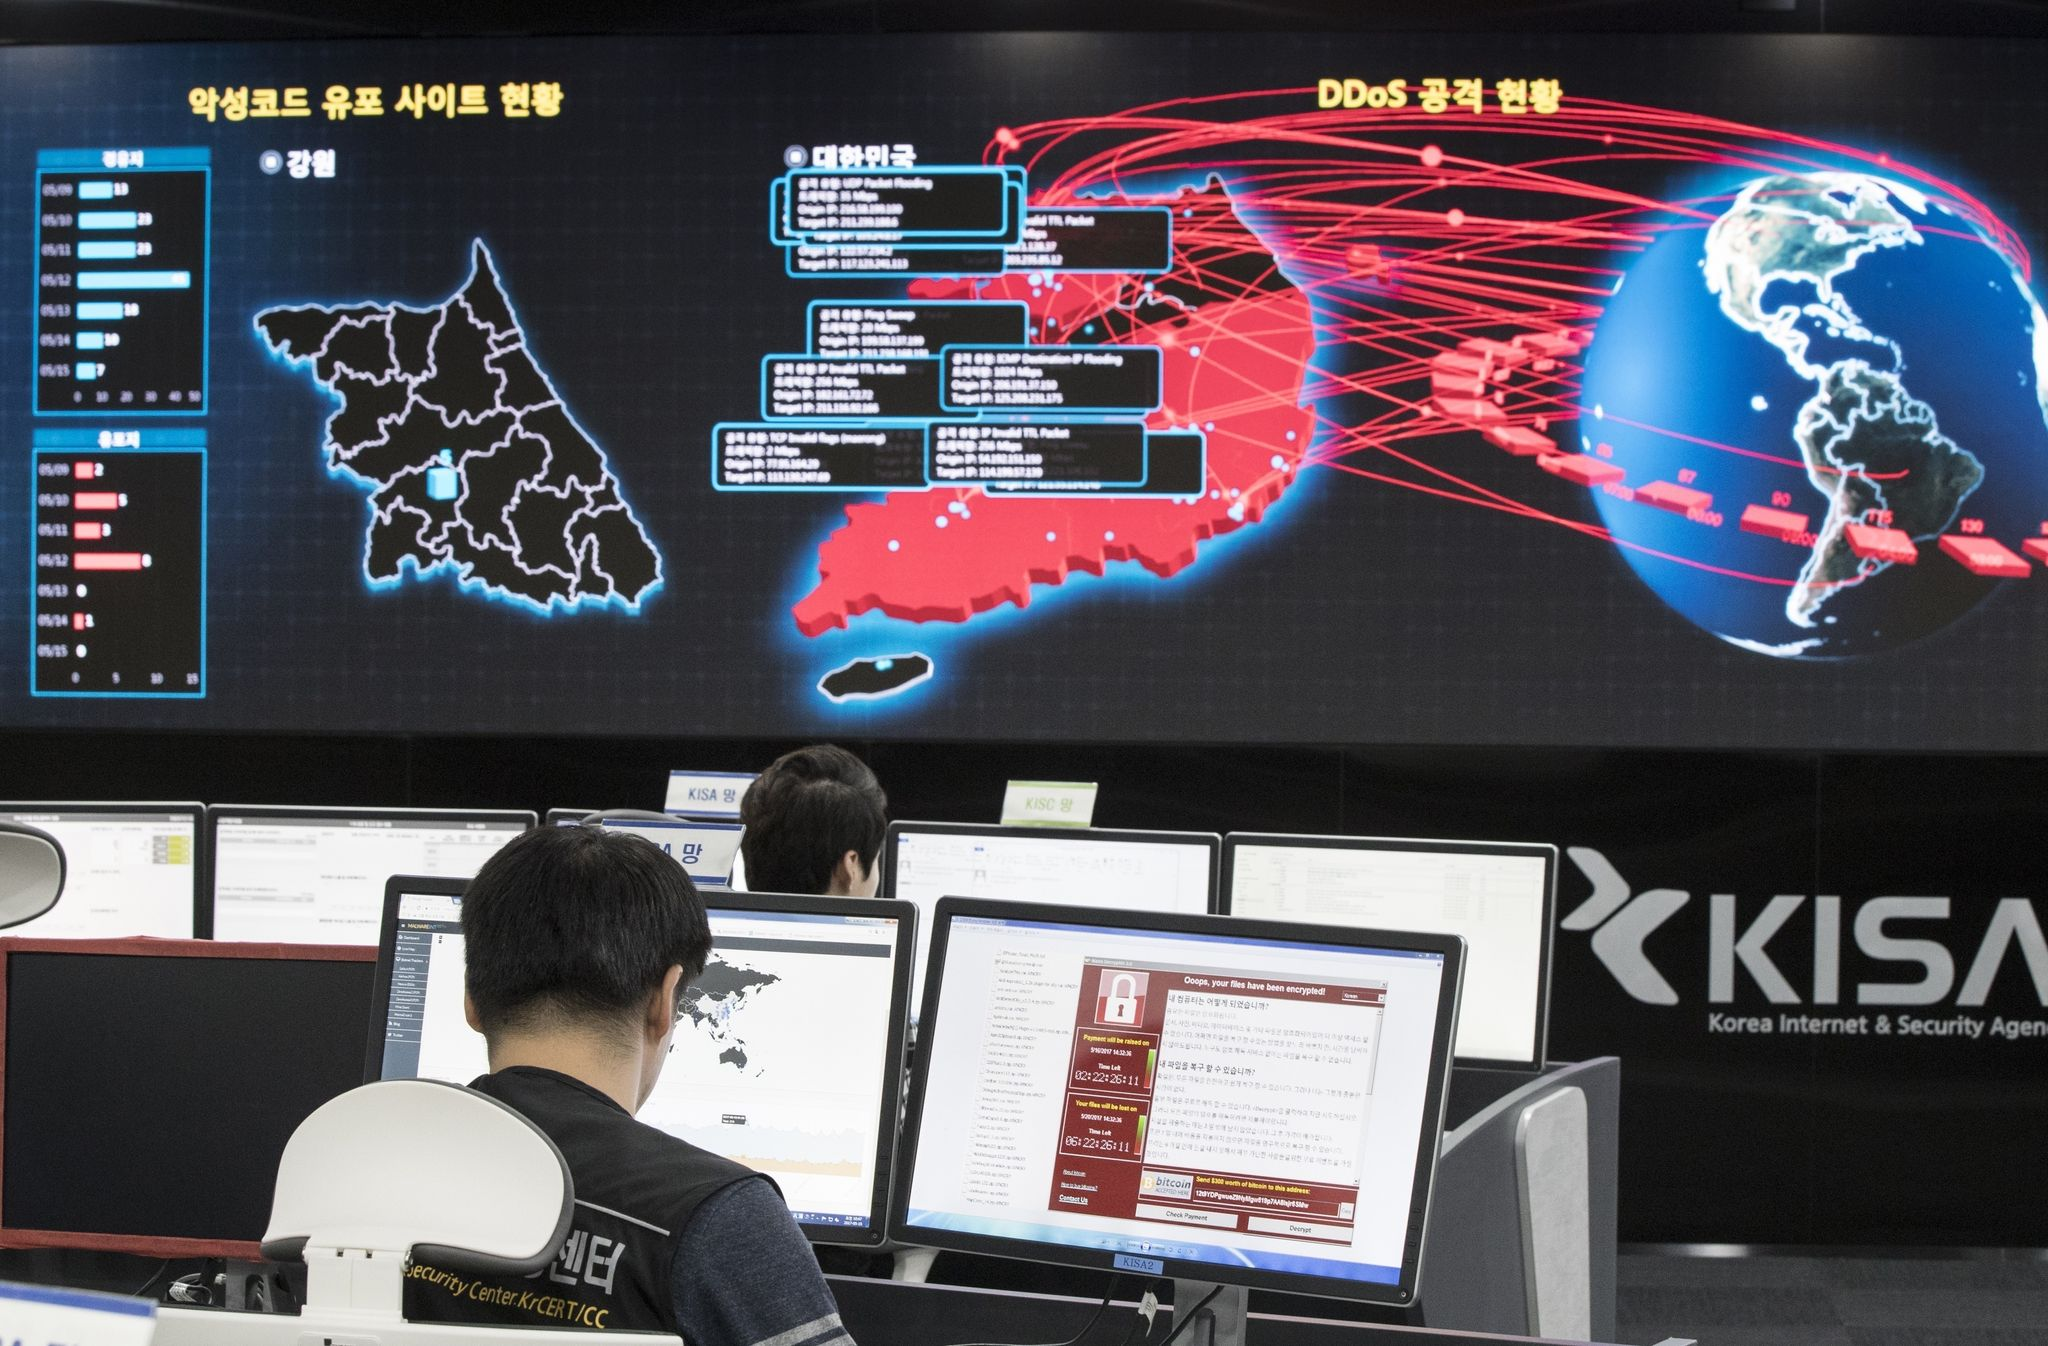 WannaCry cyberattacks persist more than a year after global outbreak: Report